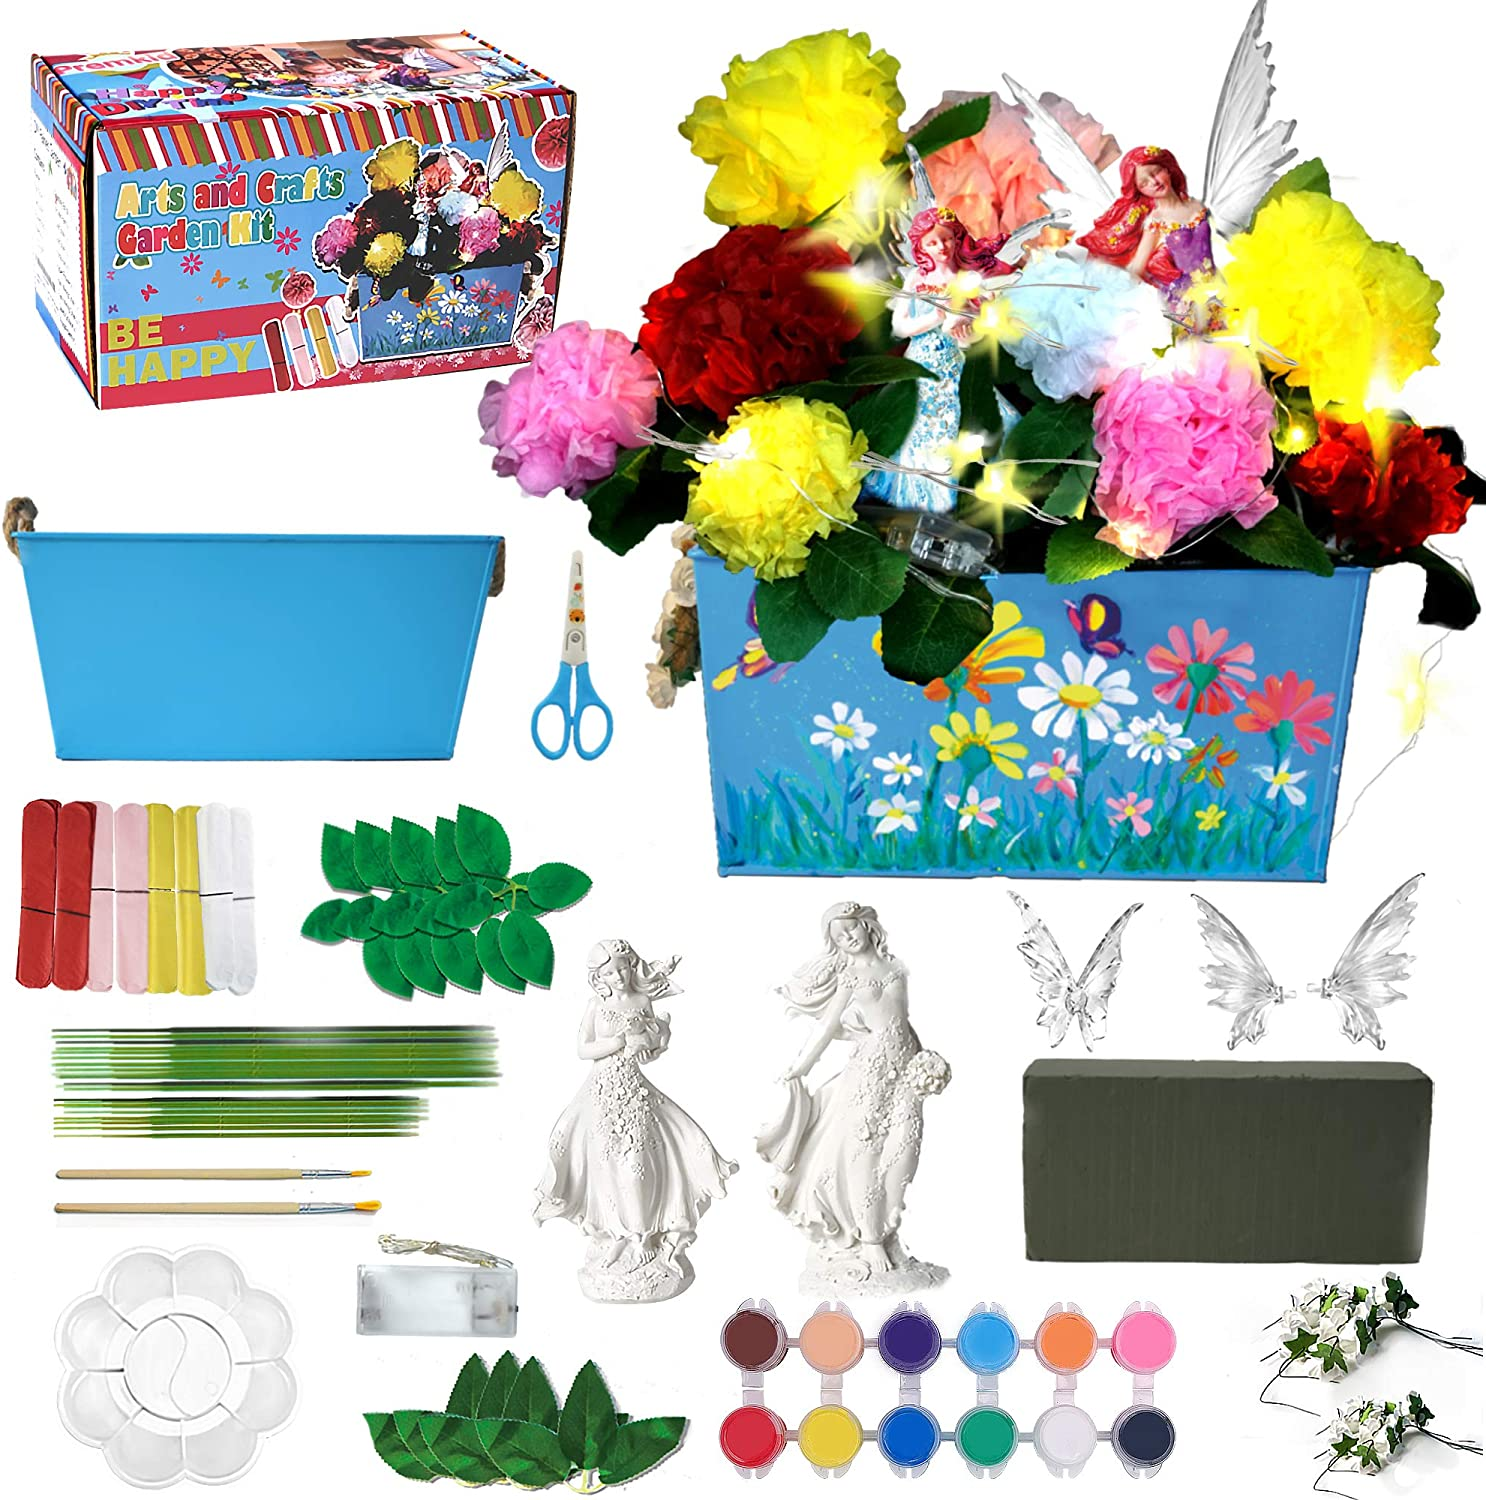 Premkid Fairy Garden Craft Kit & Paint Arts Crafts Set for Kids All Ages Both Girls and Boys Children Toy Set Kits DIY Make Your Own Fairy Garden